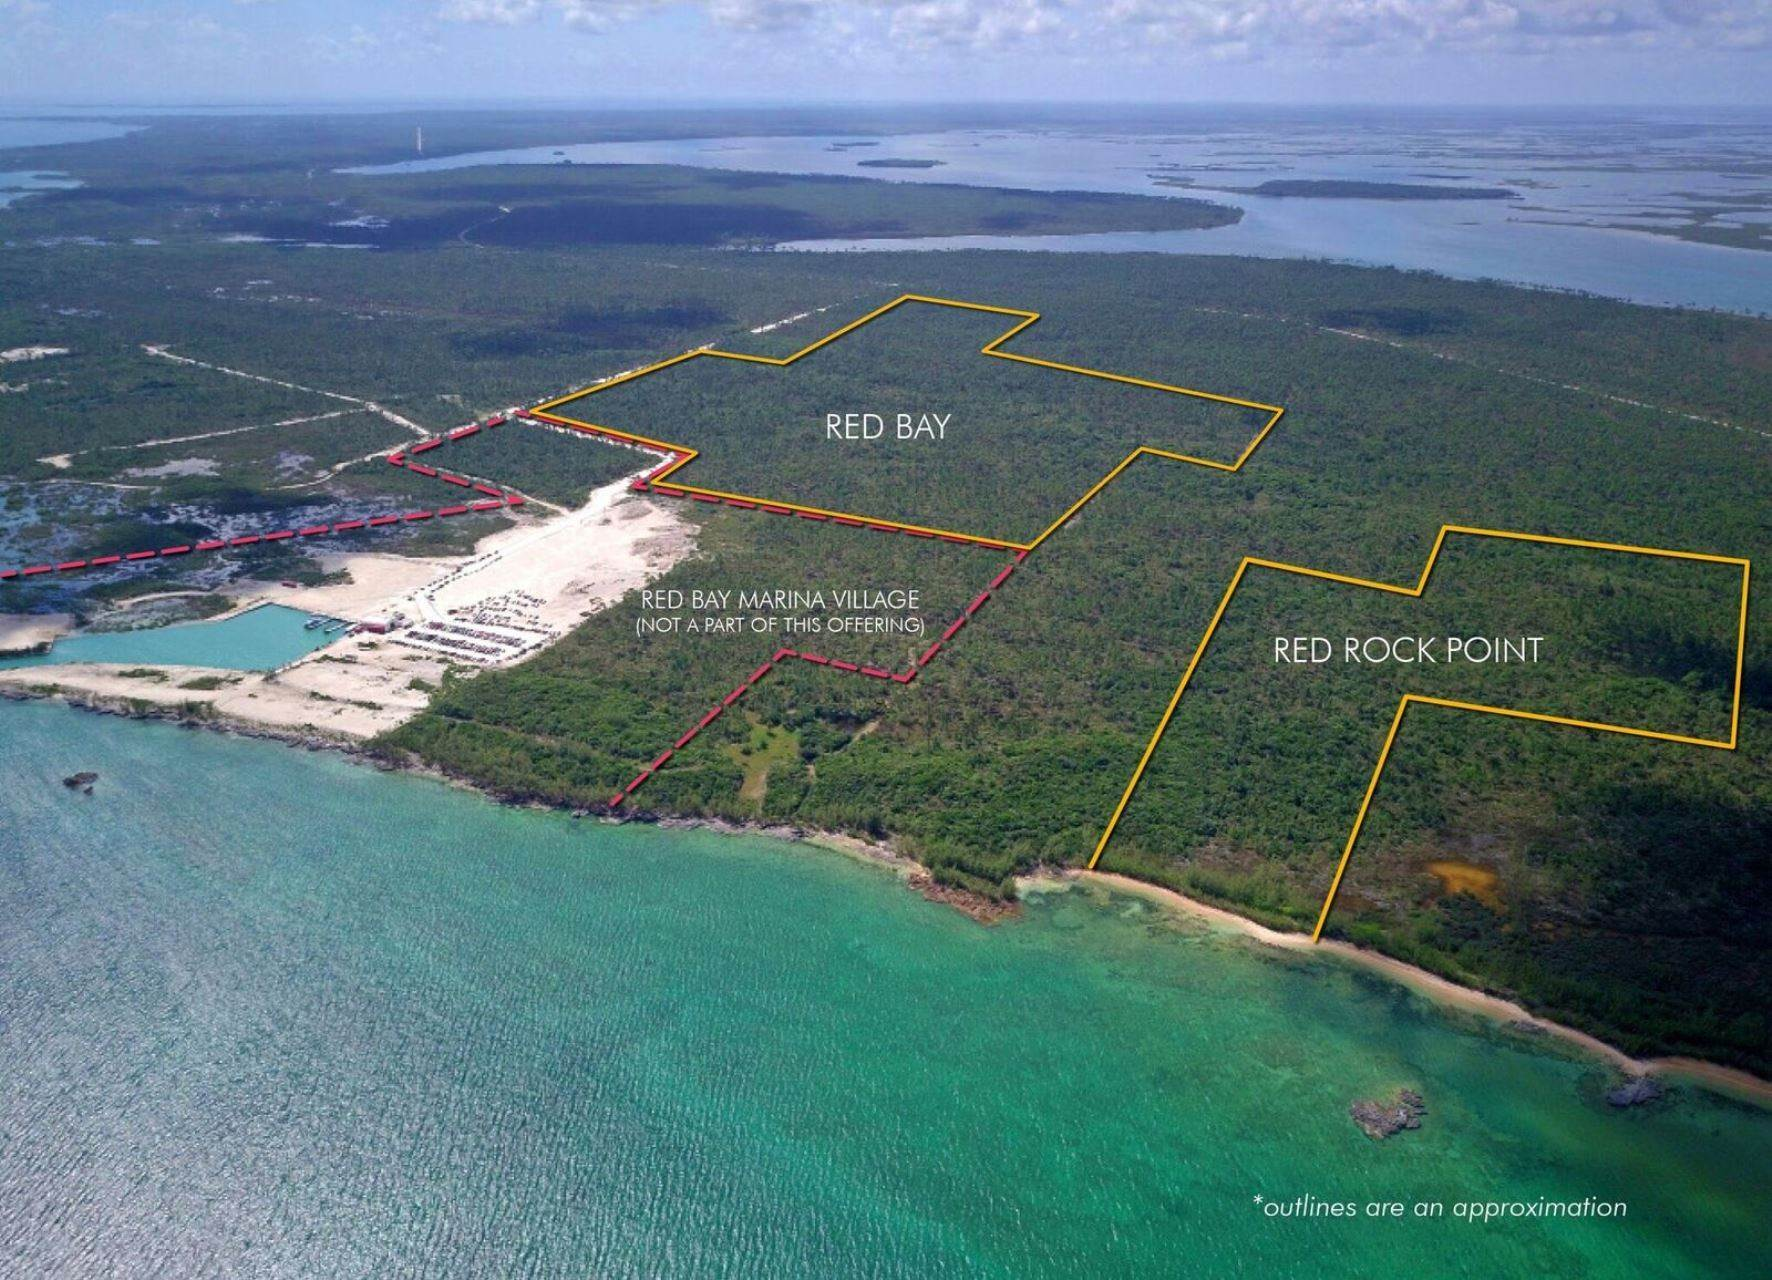 Land/Lot for Sale at Red Rock Point Development Opportunity Abaco, Bahamas